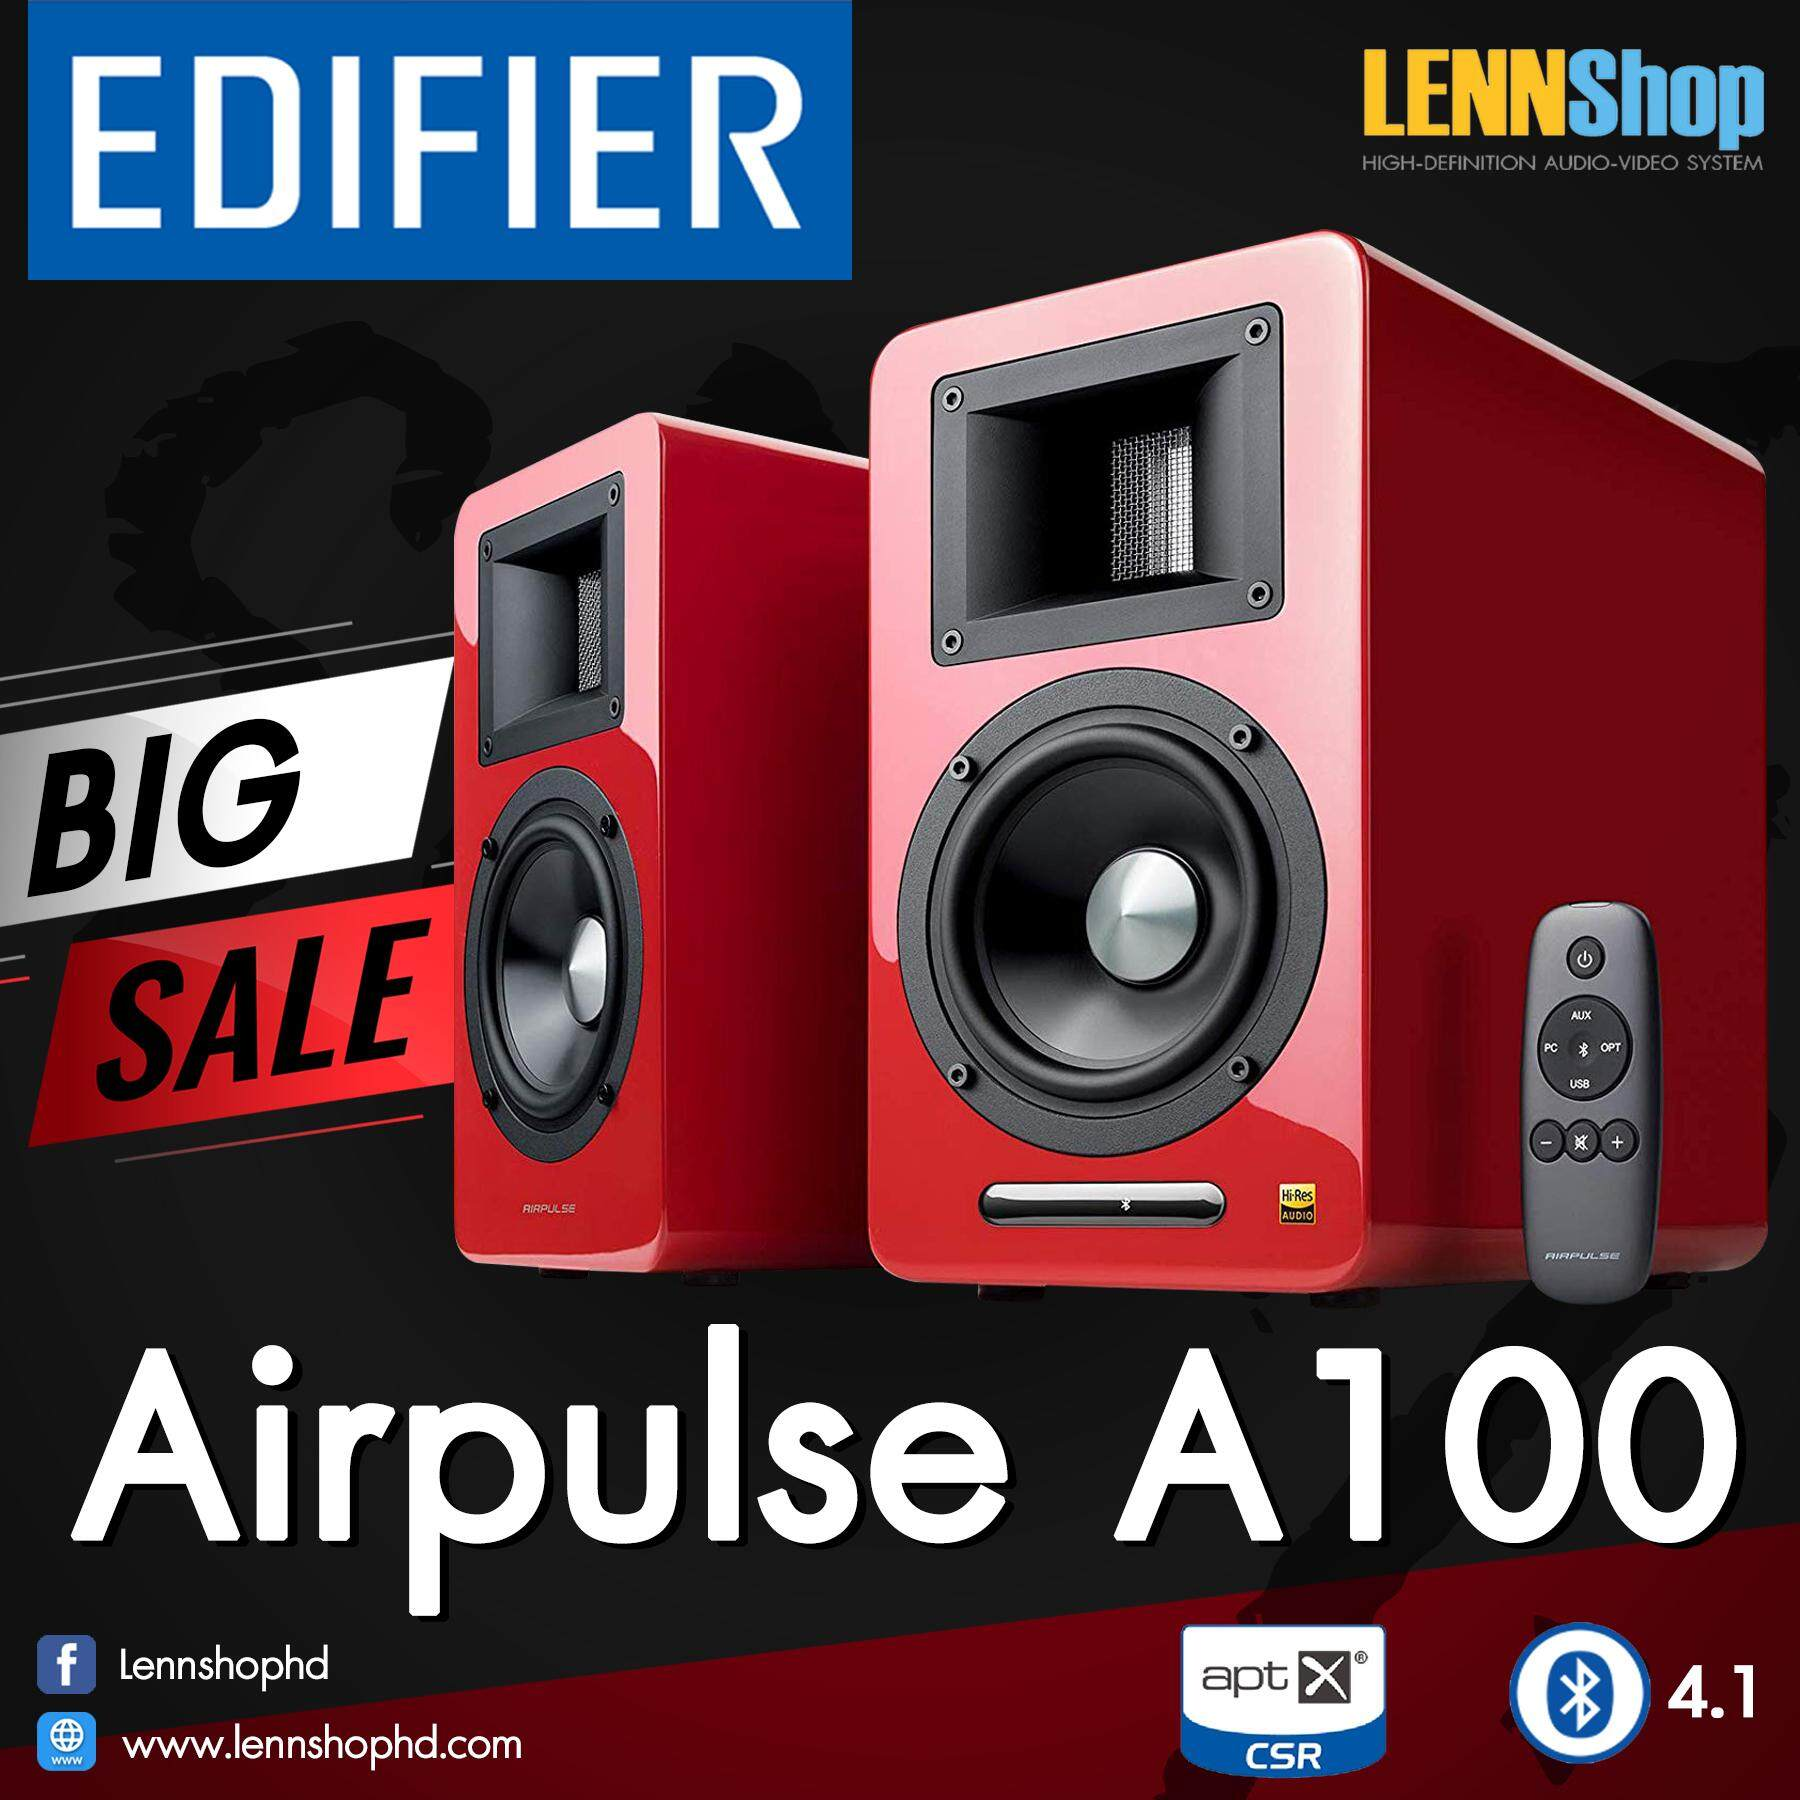 การใช้งาน  นครปฐม Edifier Airpulse A100 Hi-Res Audio Certified Active Speaker System Built-in Amplifier Optical  Coaxial  Bluetooth 4.1 - Red